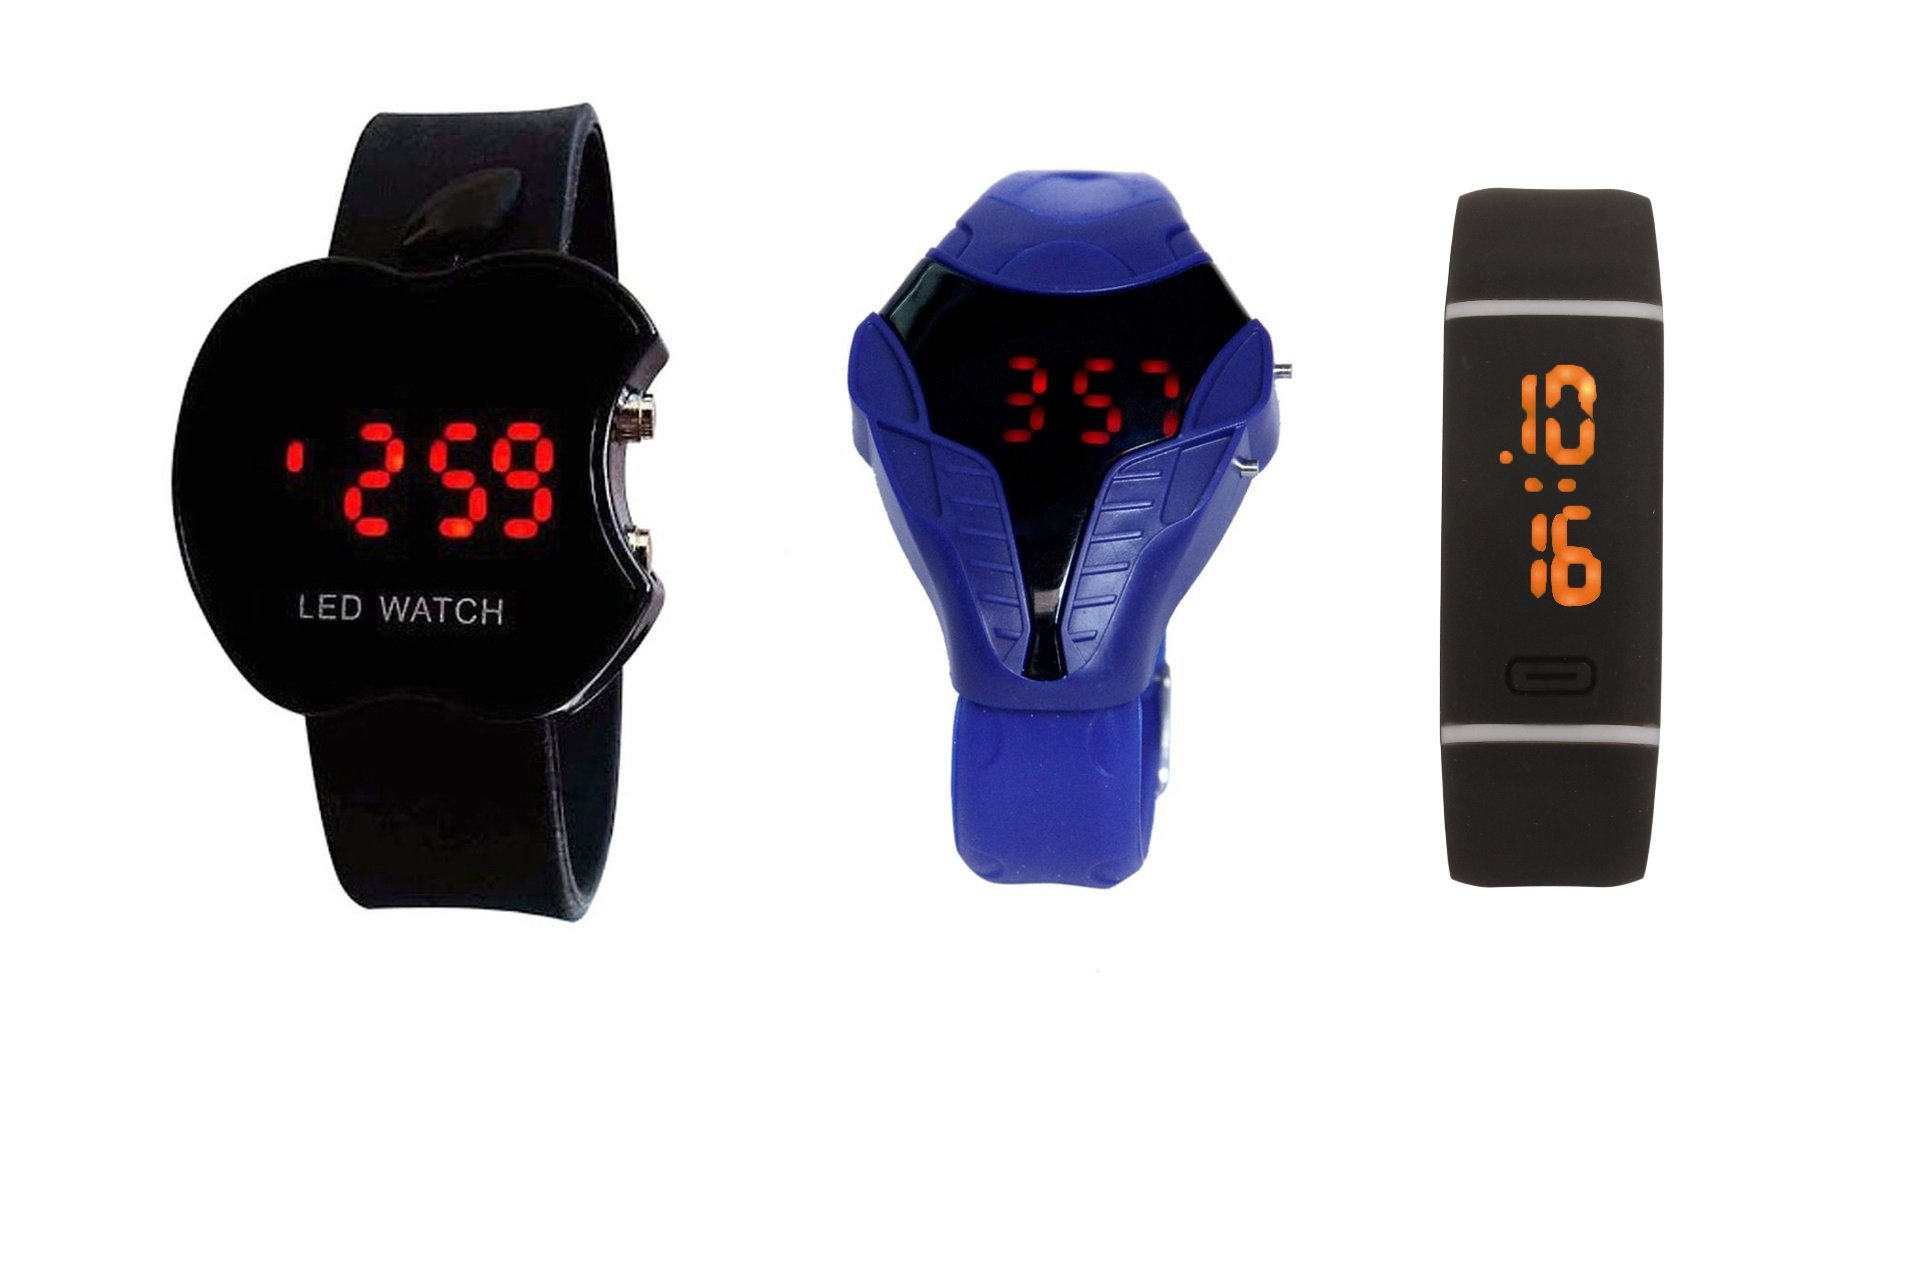 COSMIC KIDS LED WATCH BLACK APPLE LED +BLUE LED COBRA WITH DOUBLE LINE BAND BLK